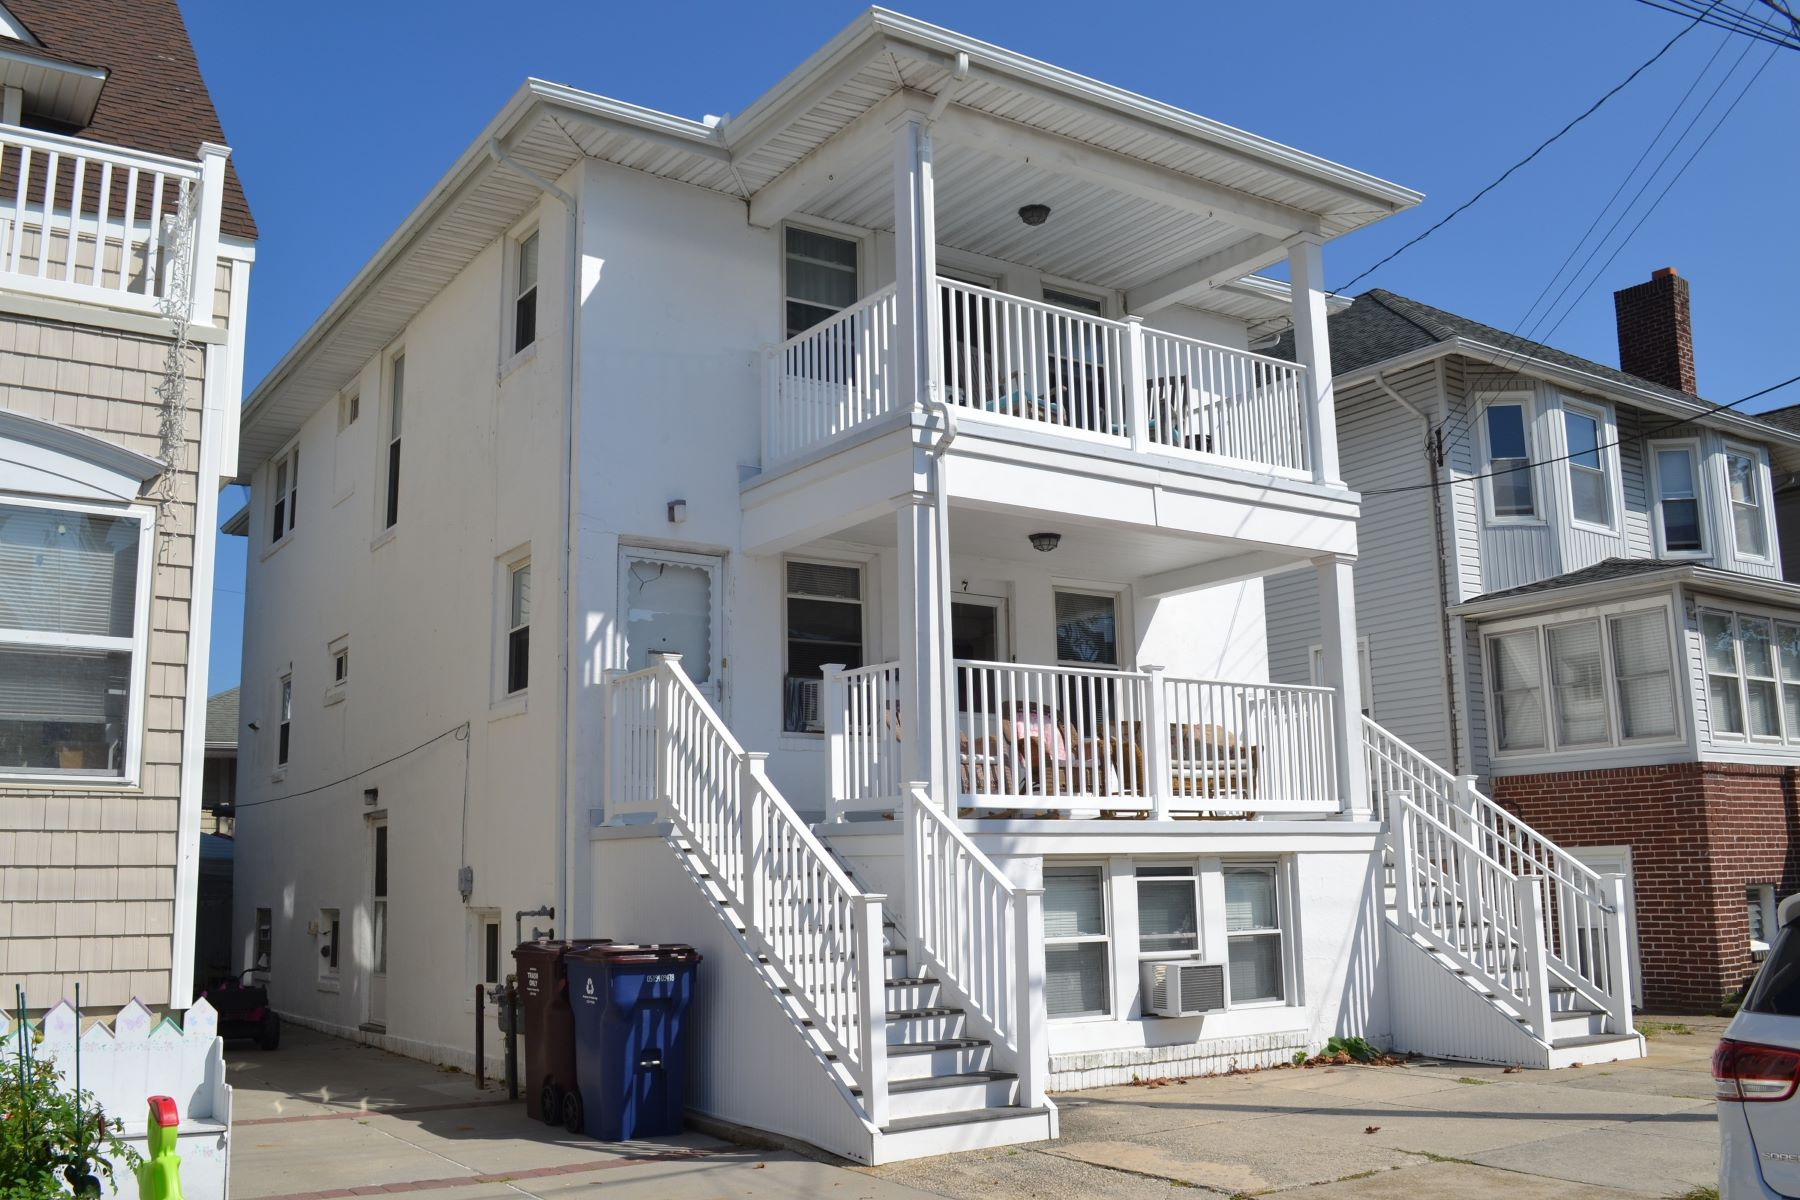 Duplex Homes for Sale at 7 S Buffalo Ave Ventnor, New Jersey 08406 United States